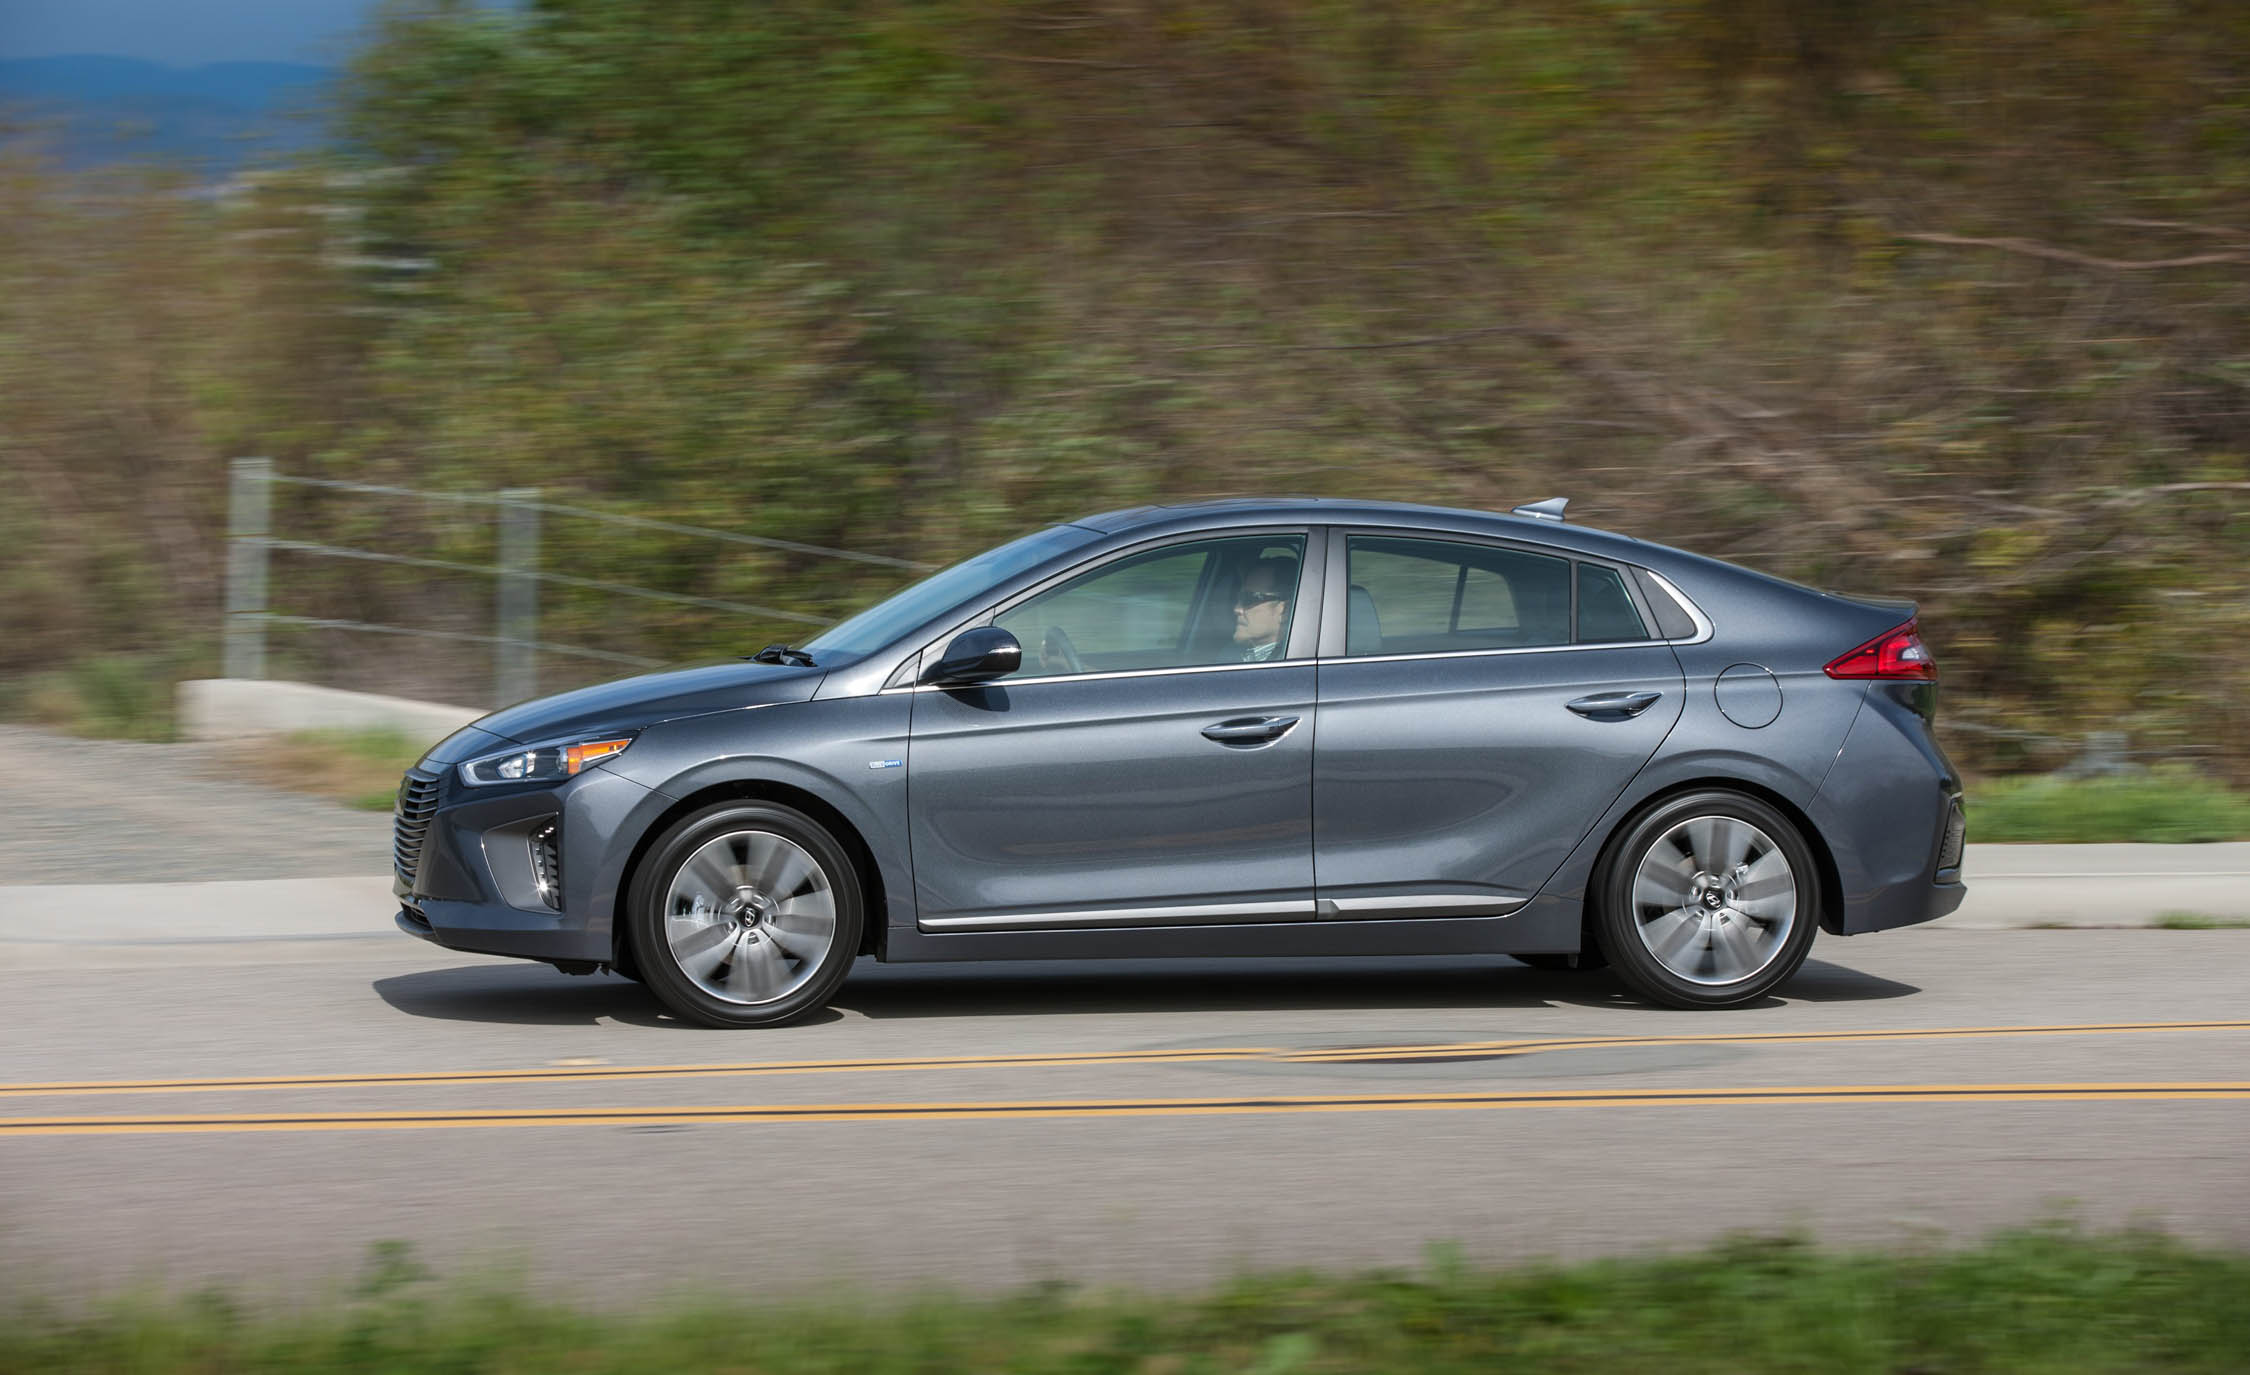 2017 Hyundai Ioniq Hybrid Test Drive Side View (Photo 66 of 67)